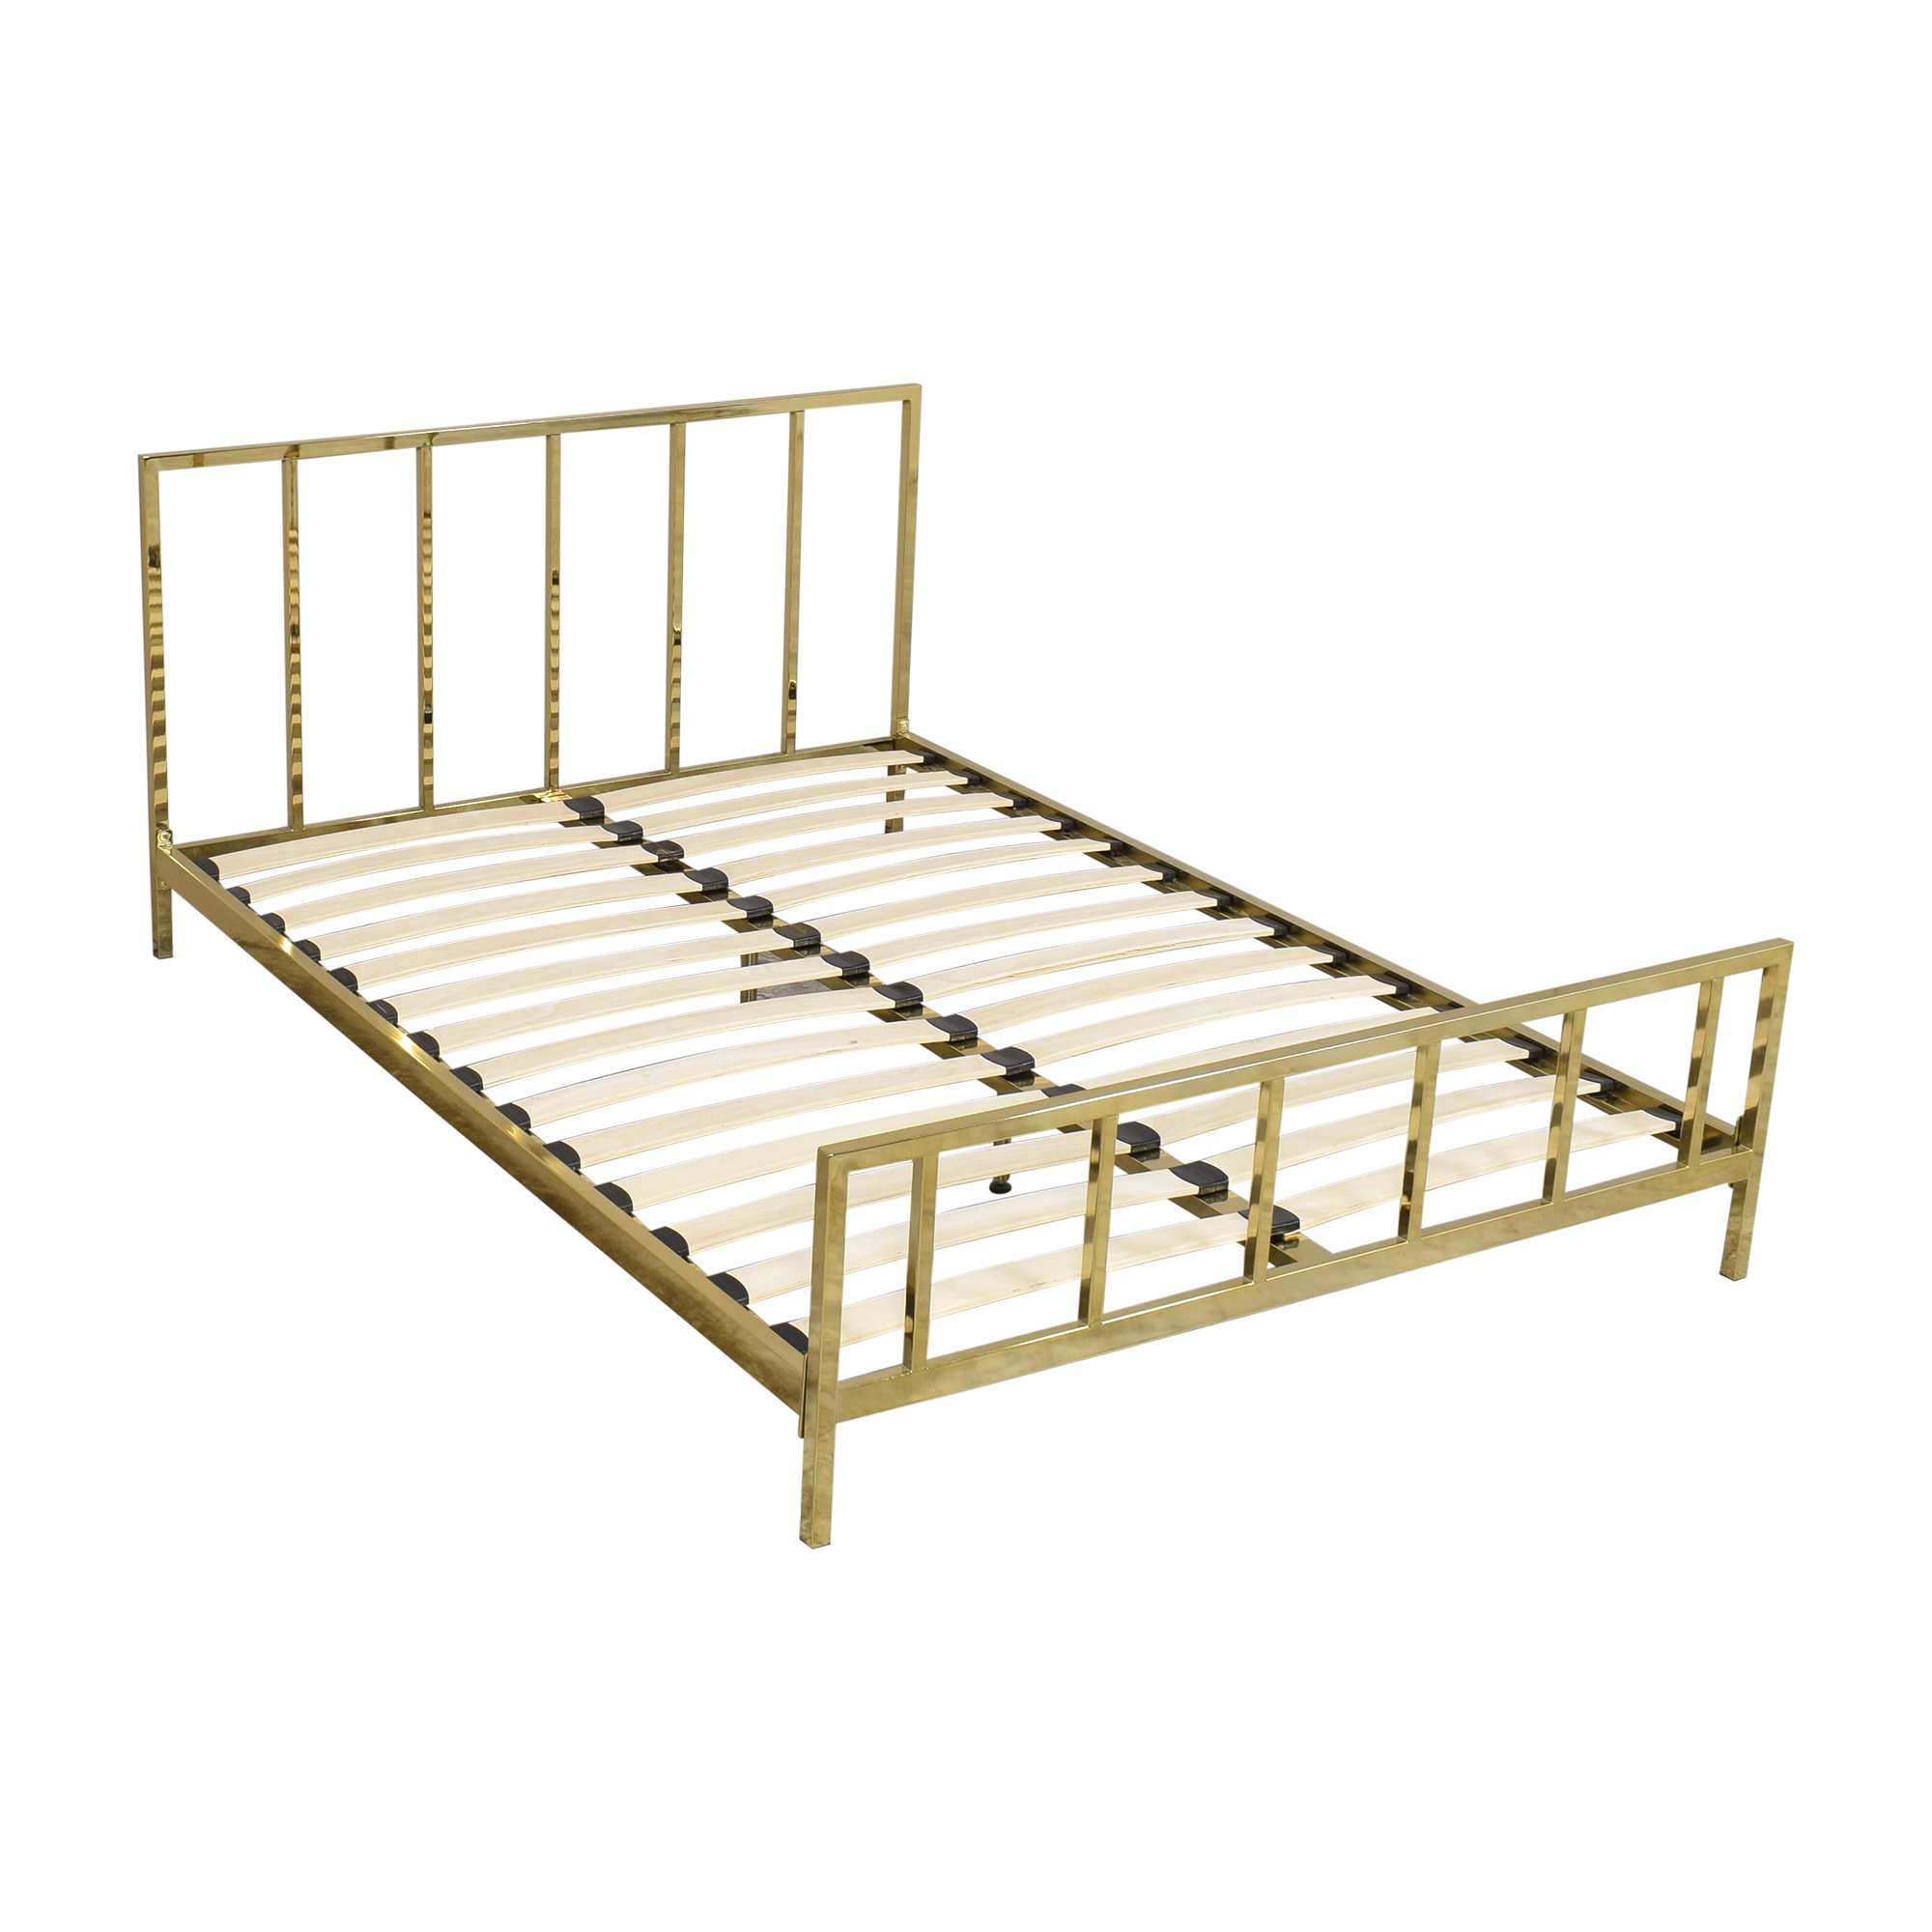 CB2 Alchemy Full Bed / Beds